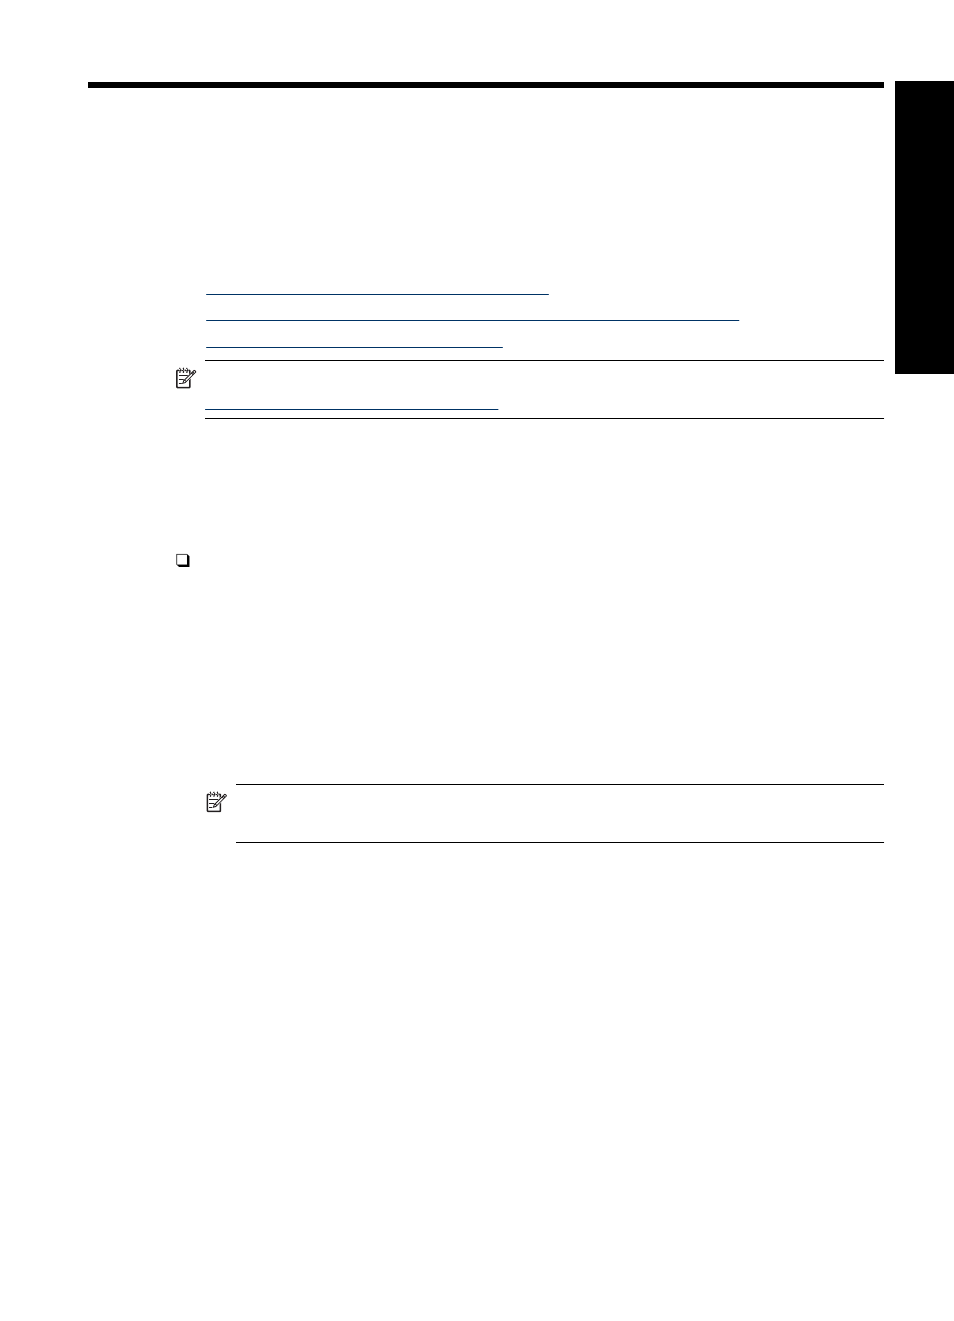 Print from a bluetooth device, What you need for a bluetooth